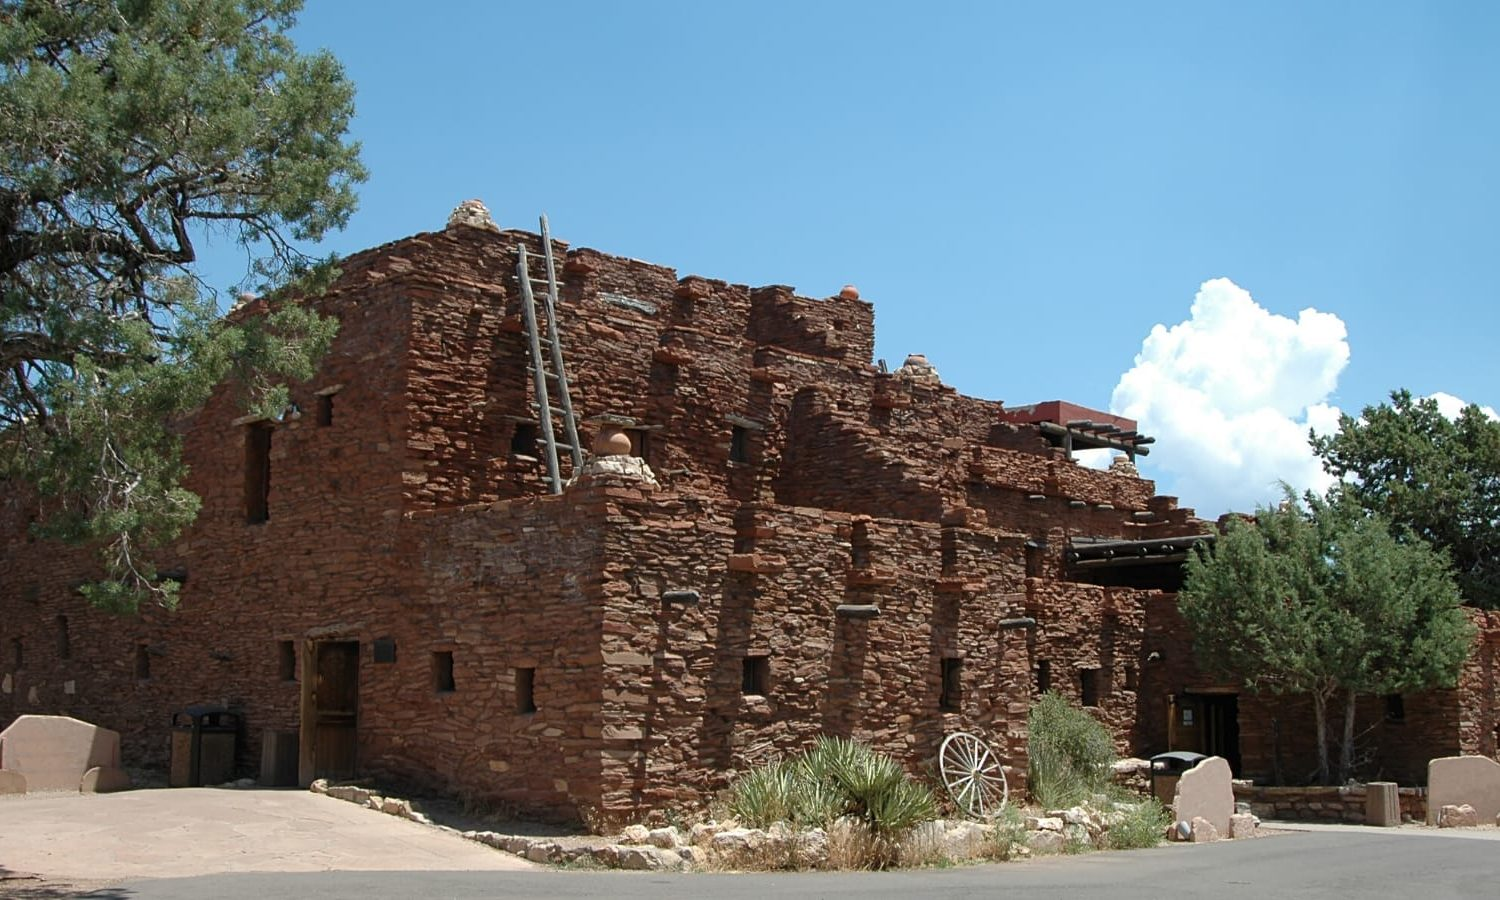 GyPSy Guide Audio Driving Tour App Grand Canyon South